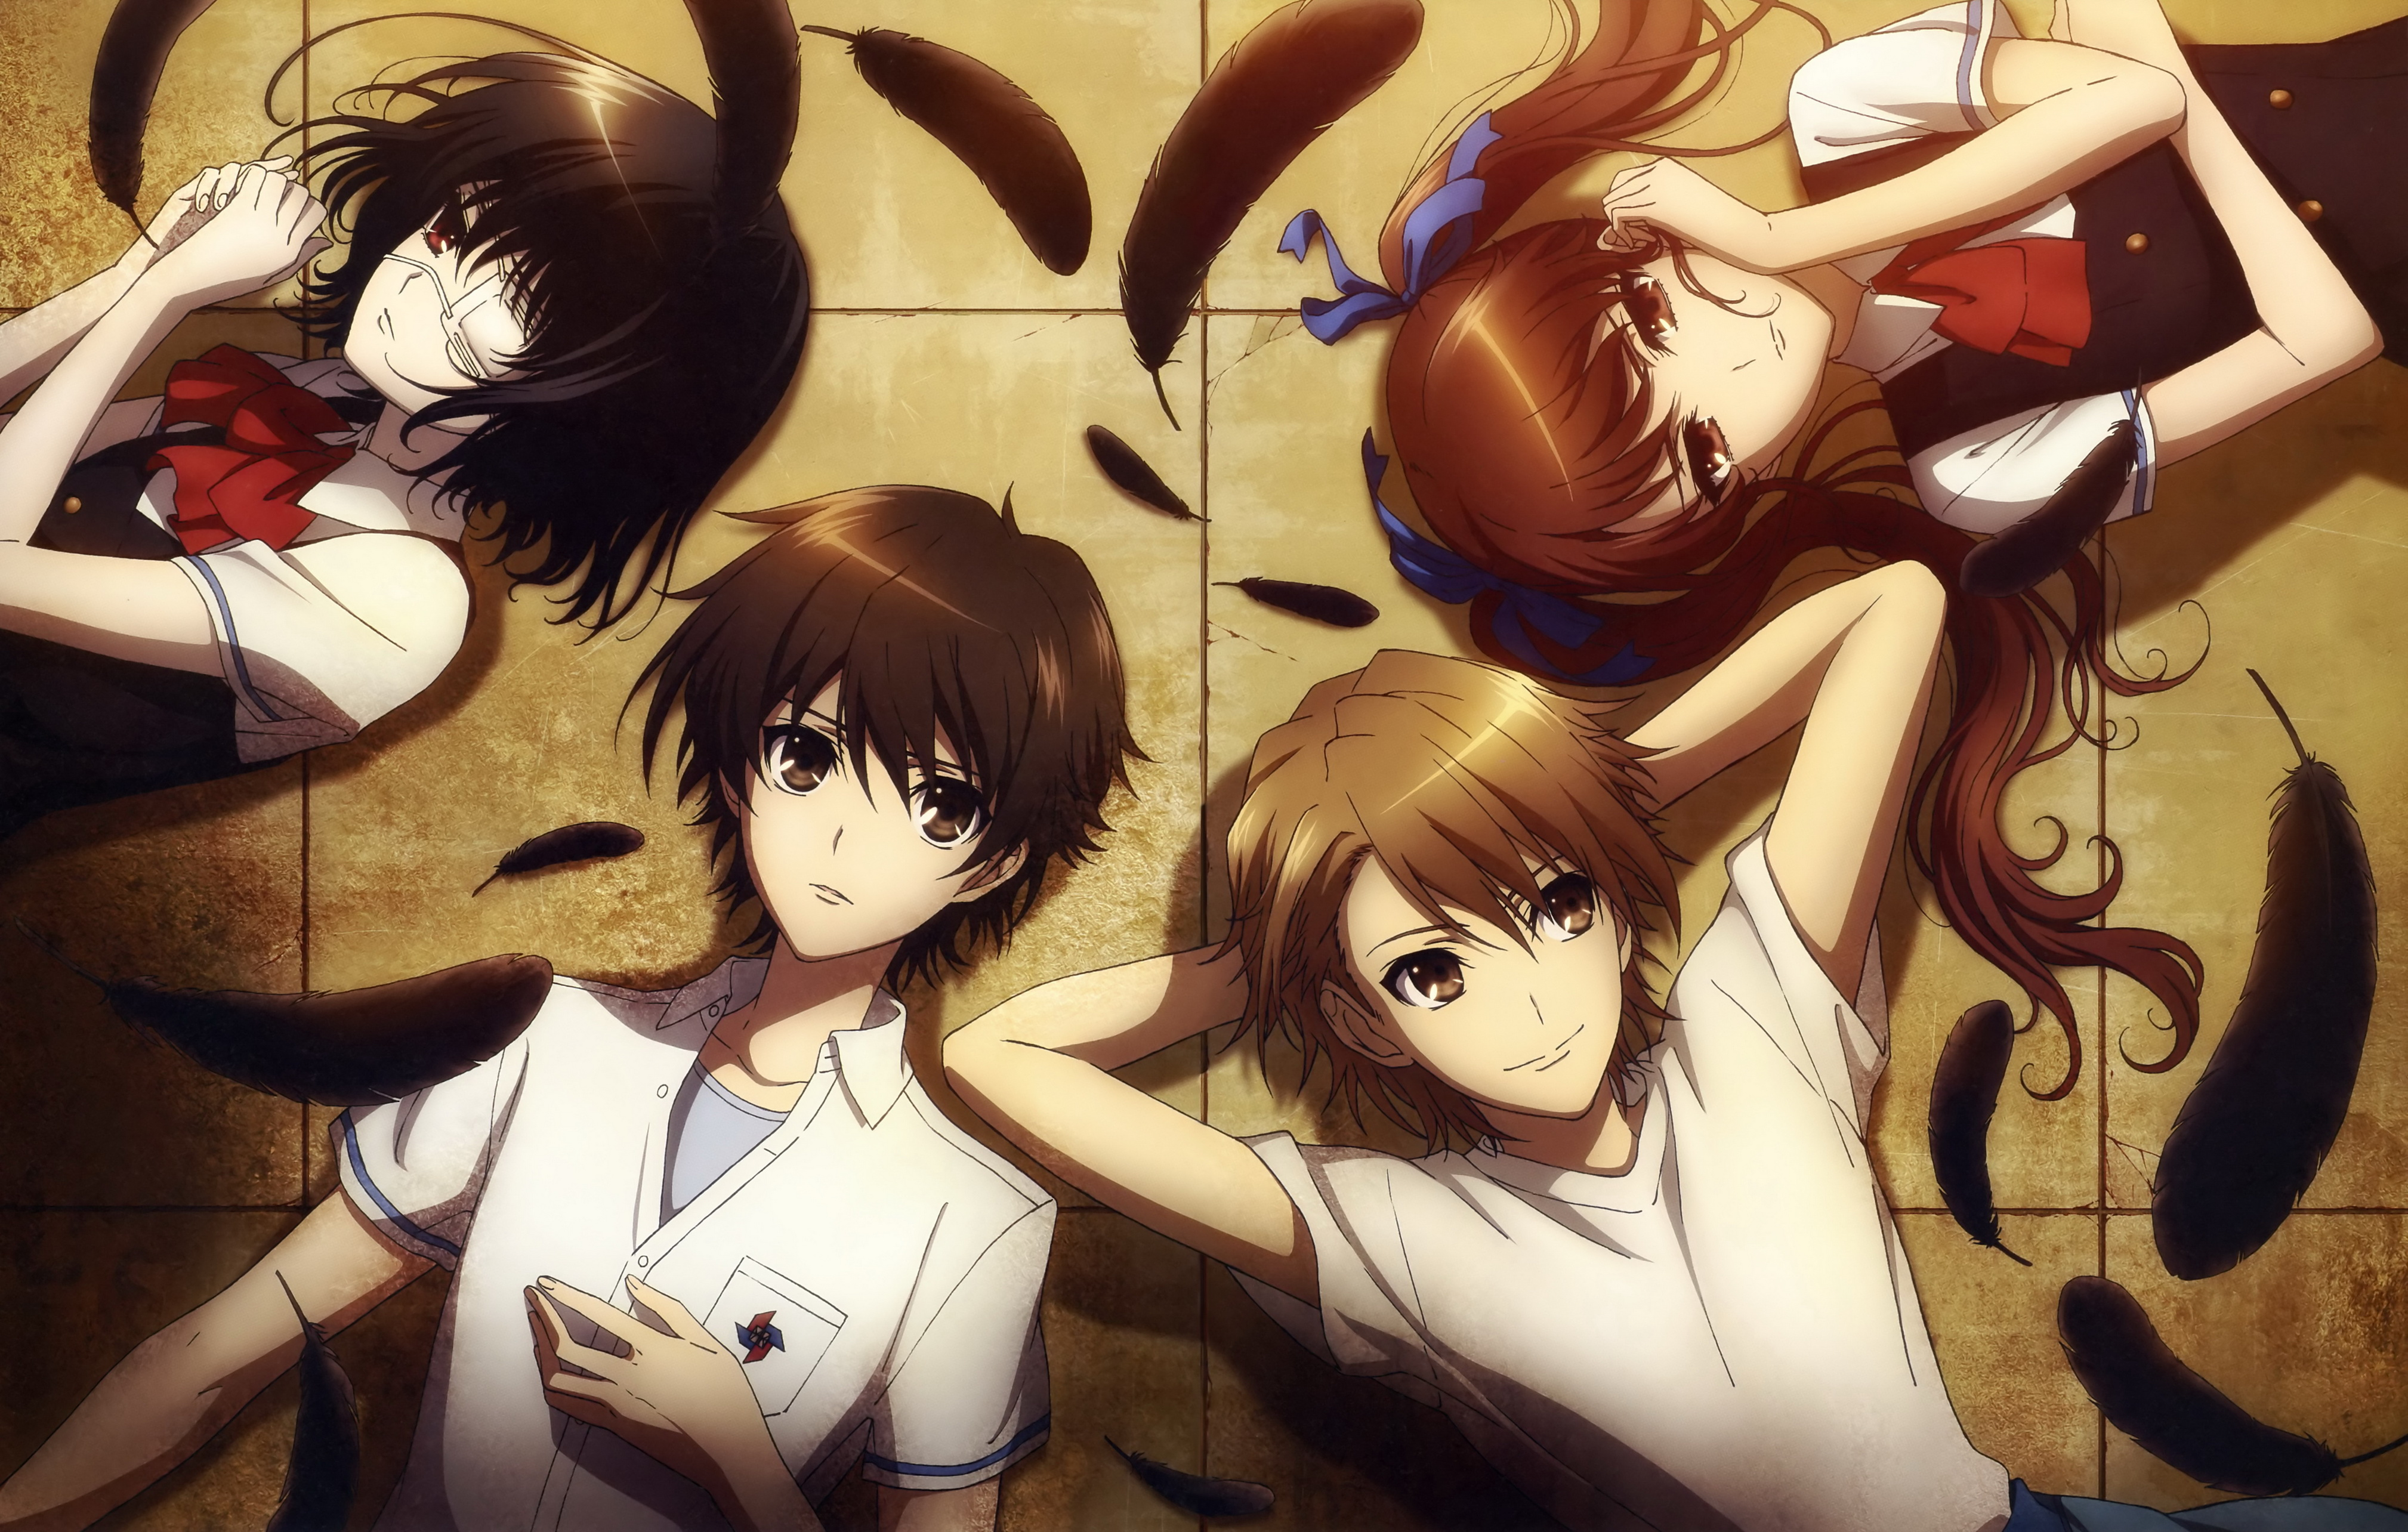 Animemanga  E  A Images Another Anime Hd Wallpaper And Background Photos